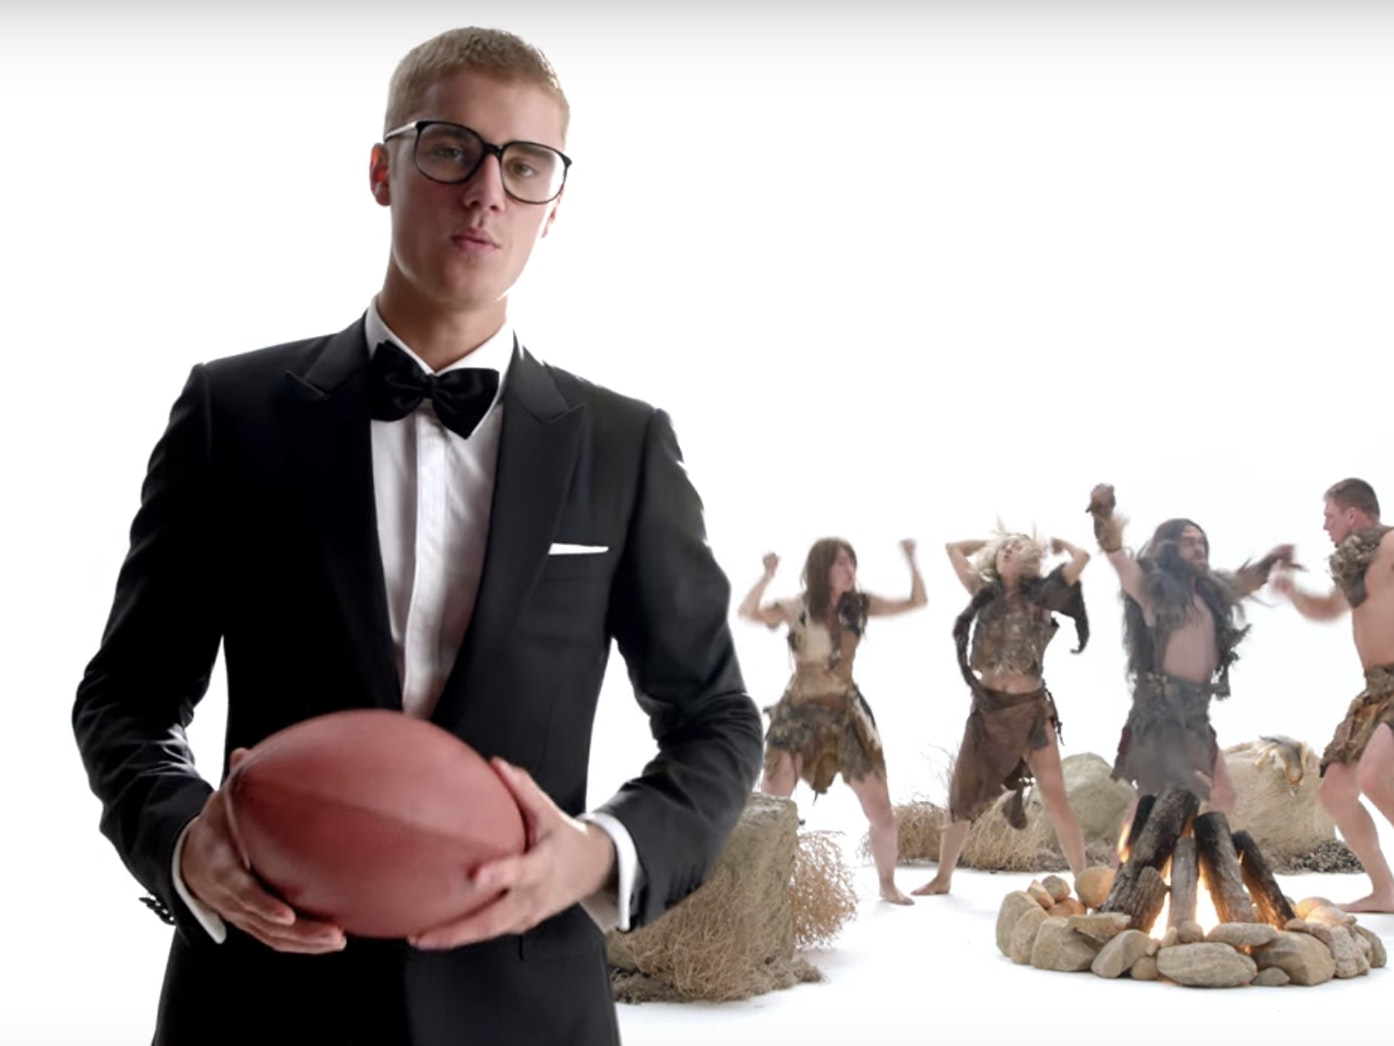 Justin Bieber's new Super Bowl LI ad is unexpectedly scientific.